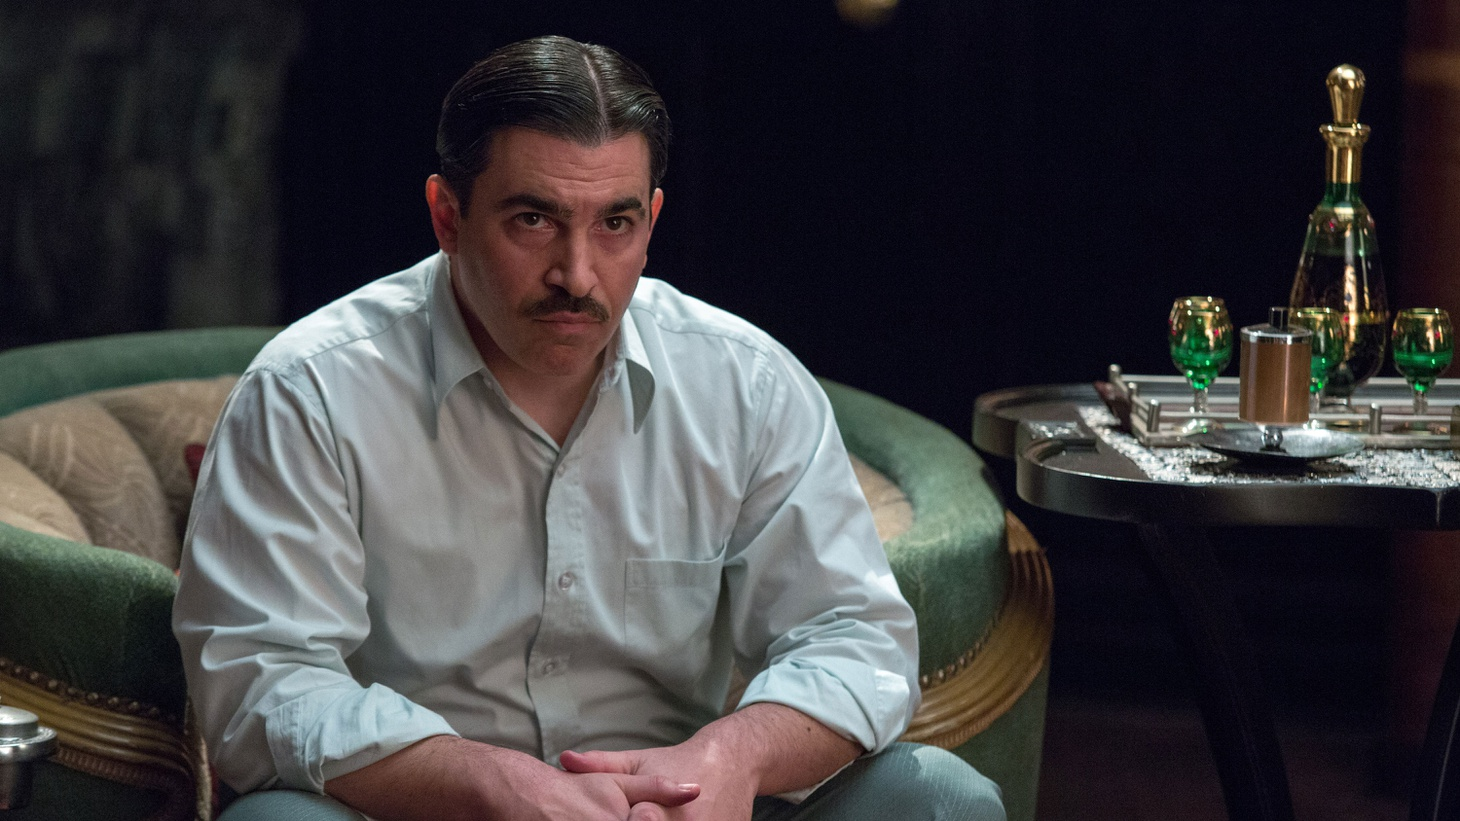 Actor Chris Messina visits The Treatment to discuss playing a prohibition-era gangster beside Ben Affleck in Live by Night.